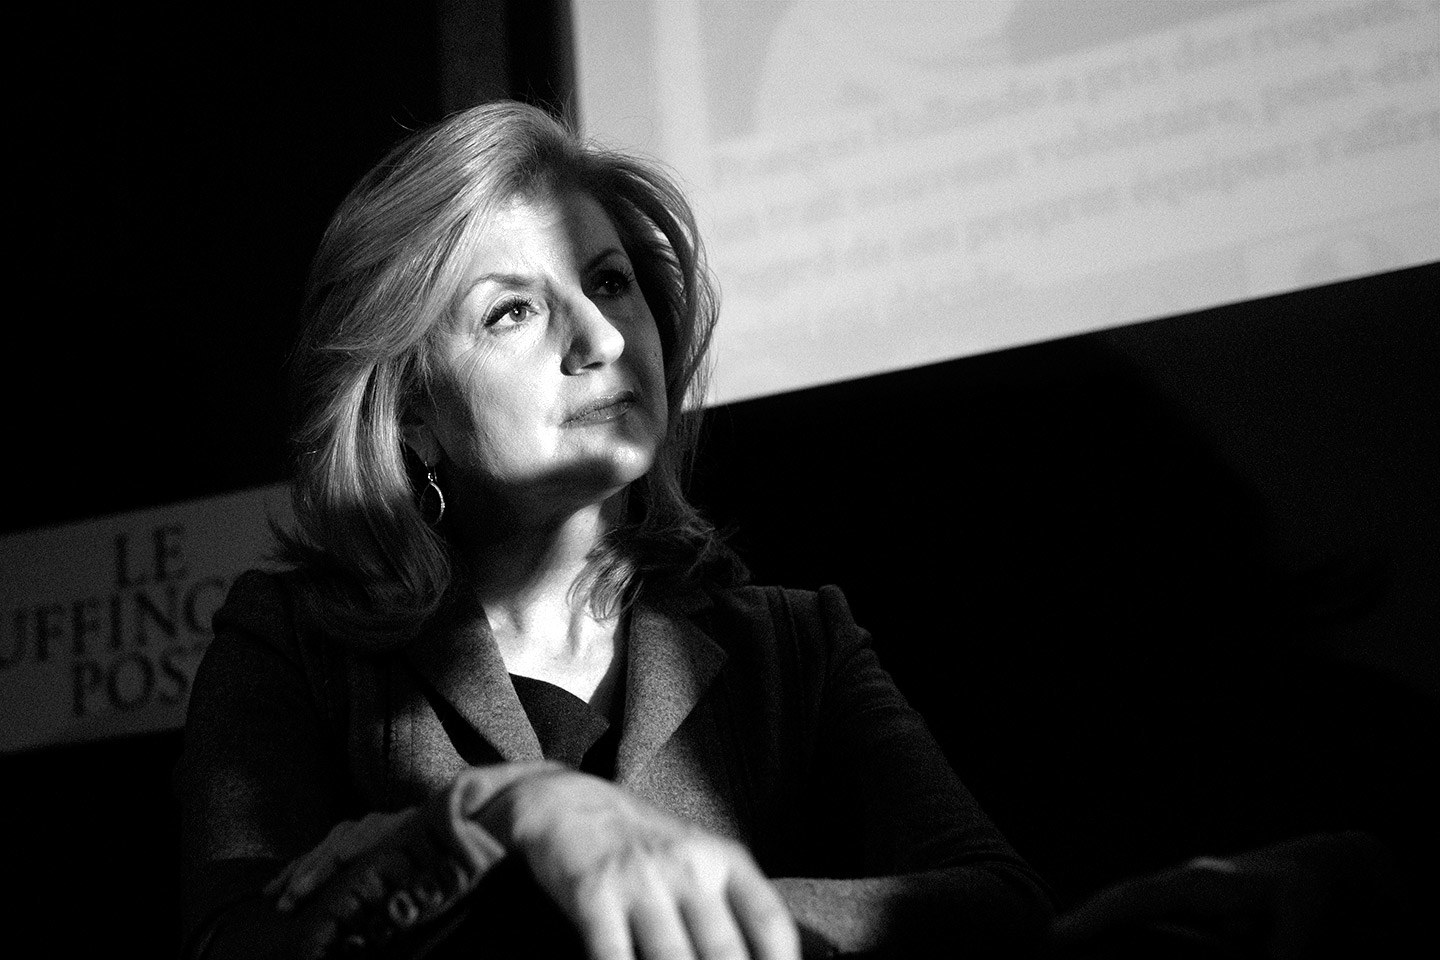 nguoi thanh cong - Arianna Huffington - elle viet nam